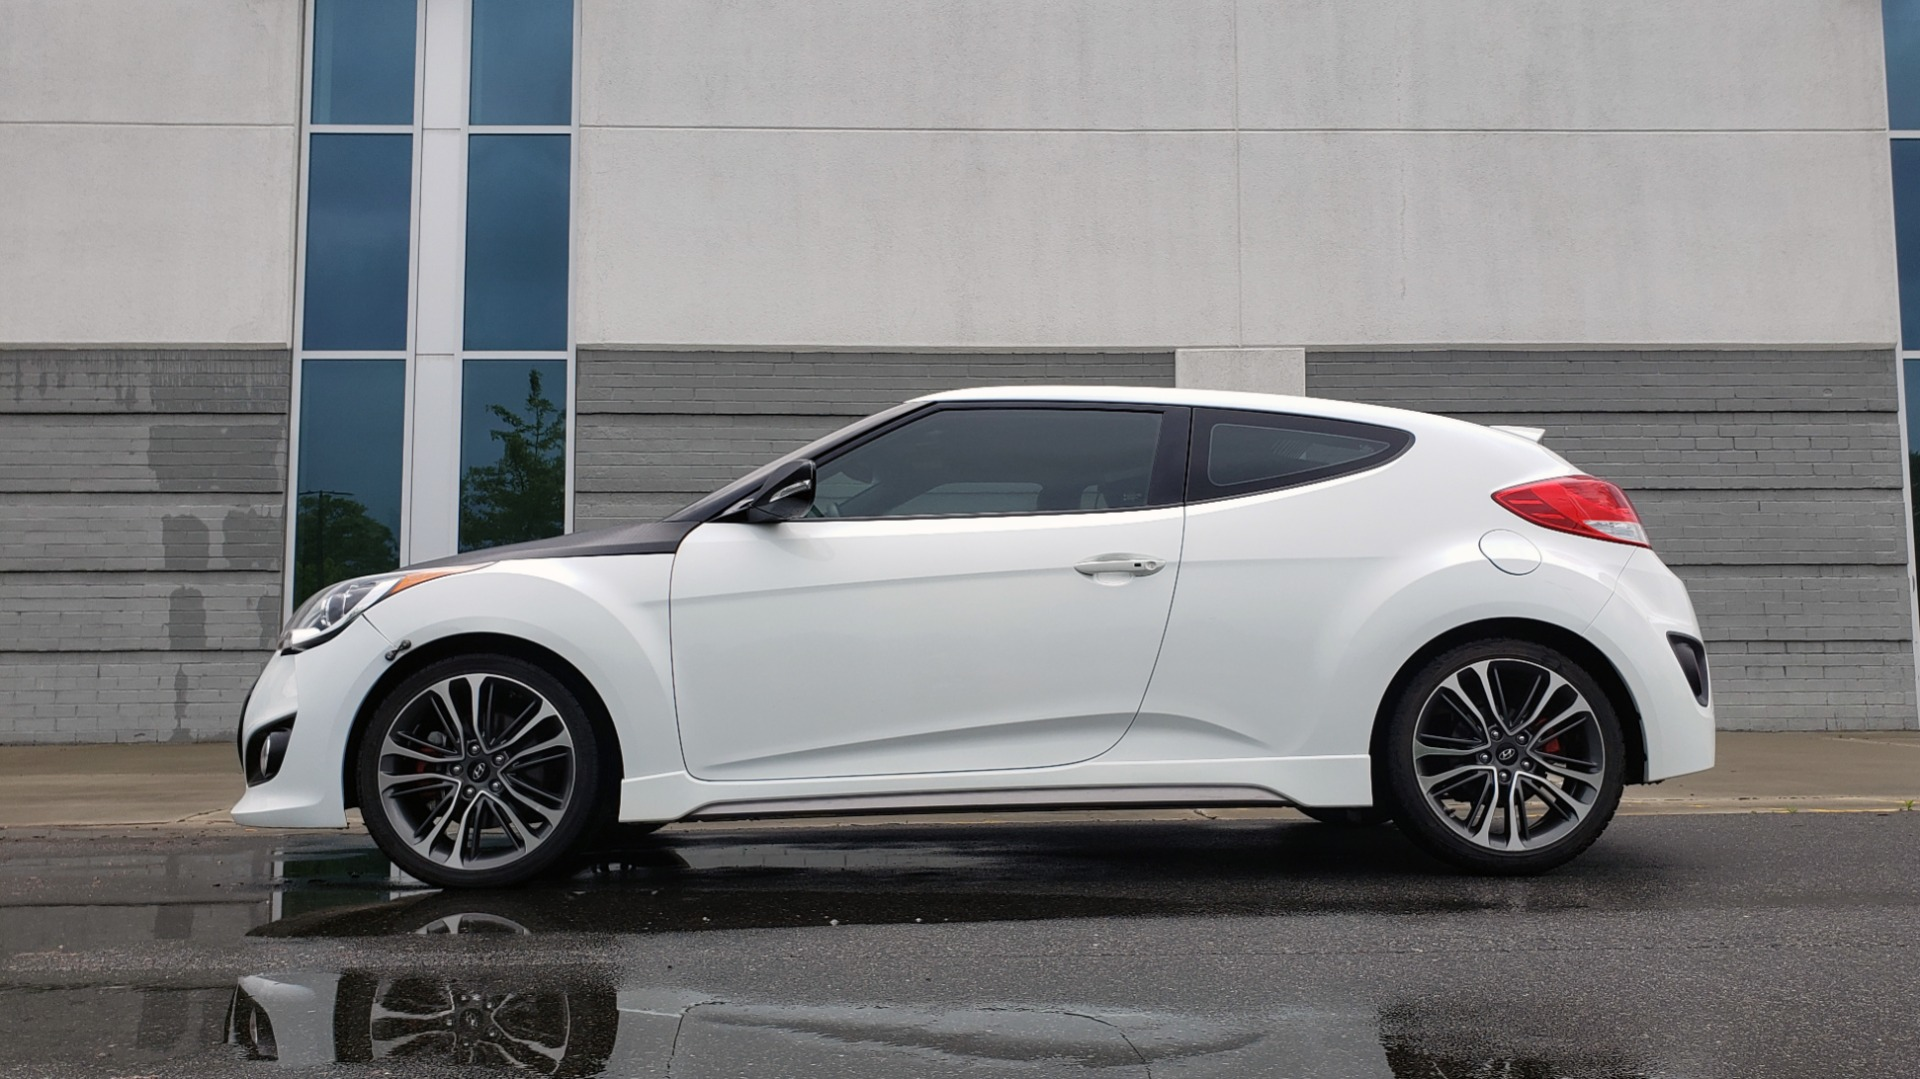 Used 2016 Hyundai VELOSTER 1.6L TURBO / 7-SPD ATUO / 3DR COUPE / NAV / PANO-ROOF for sale Sold at Formula Imports in Charlotte NC 28227 5